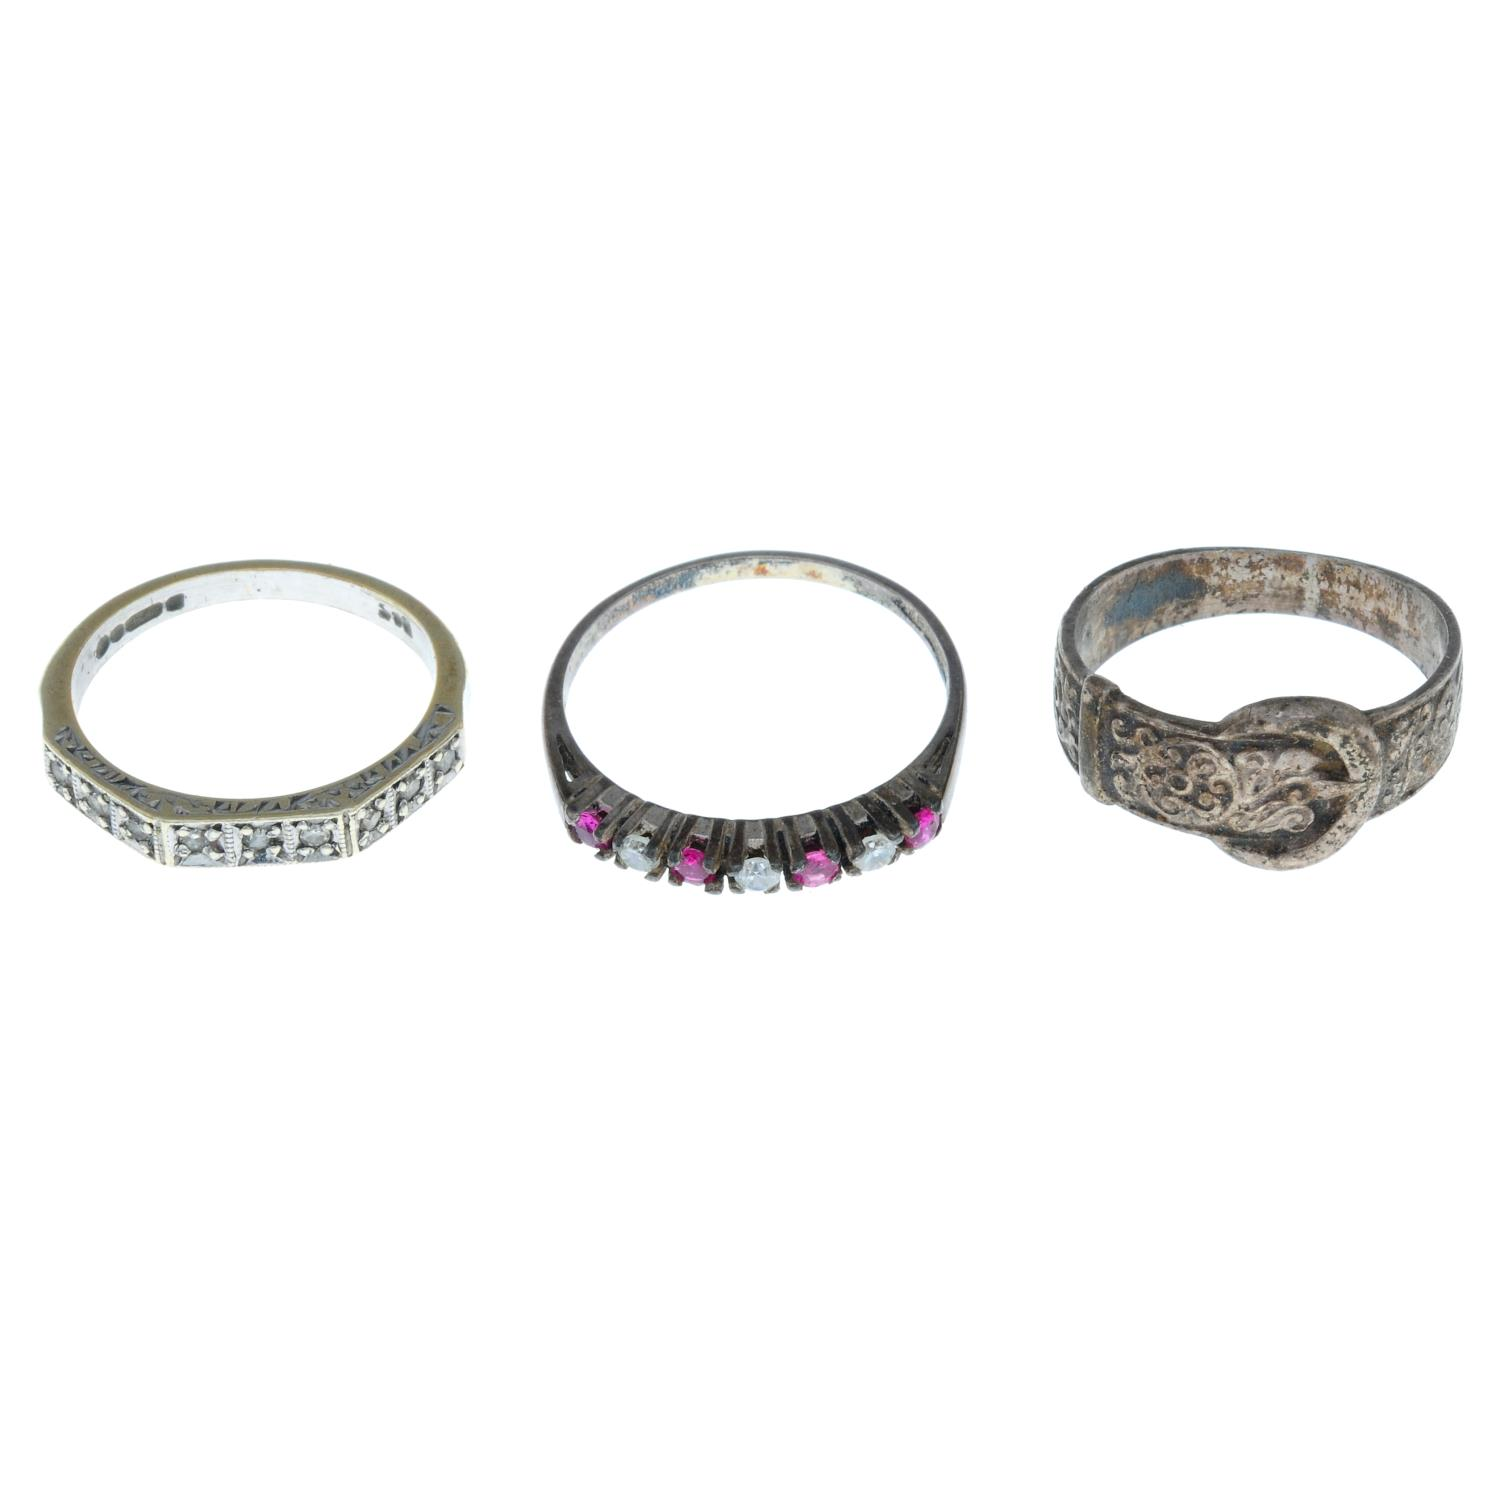 Fourteen early 20th century and later rings, - Image 4 of 4